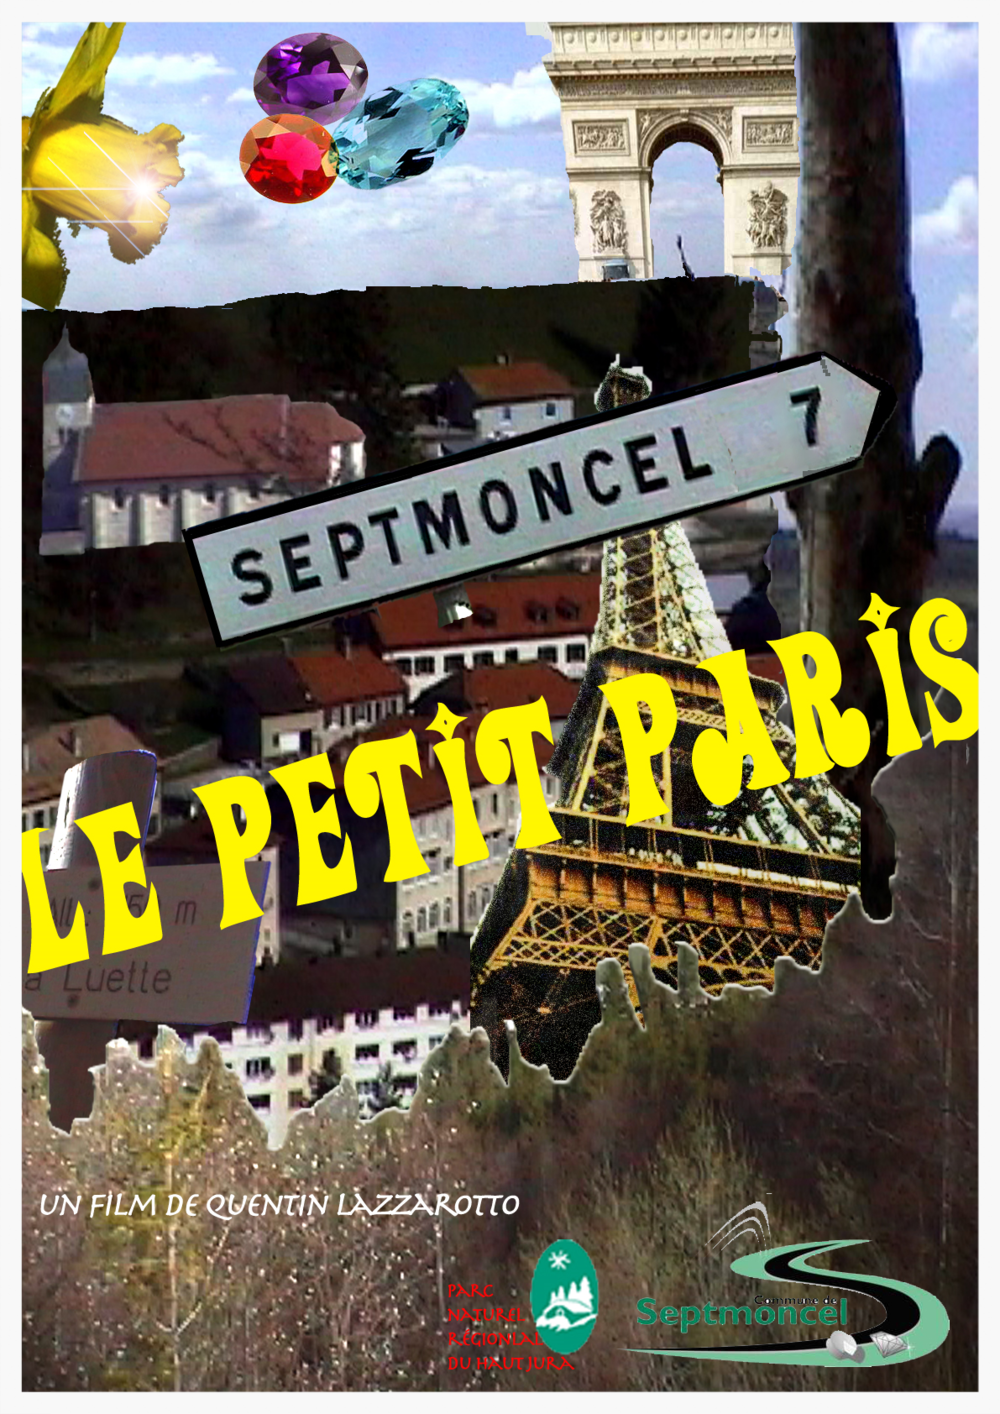 affiche septmoncel le petit paris Quentin Lazzarotto